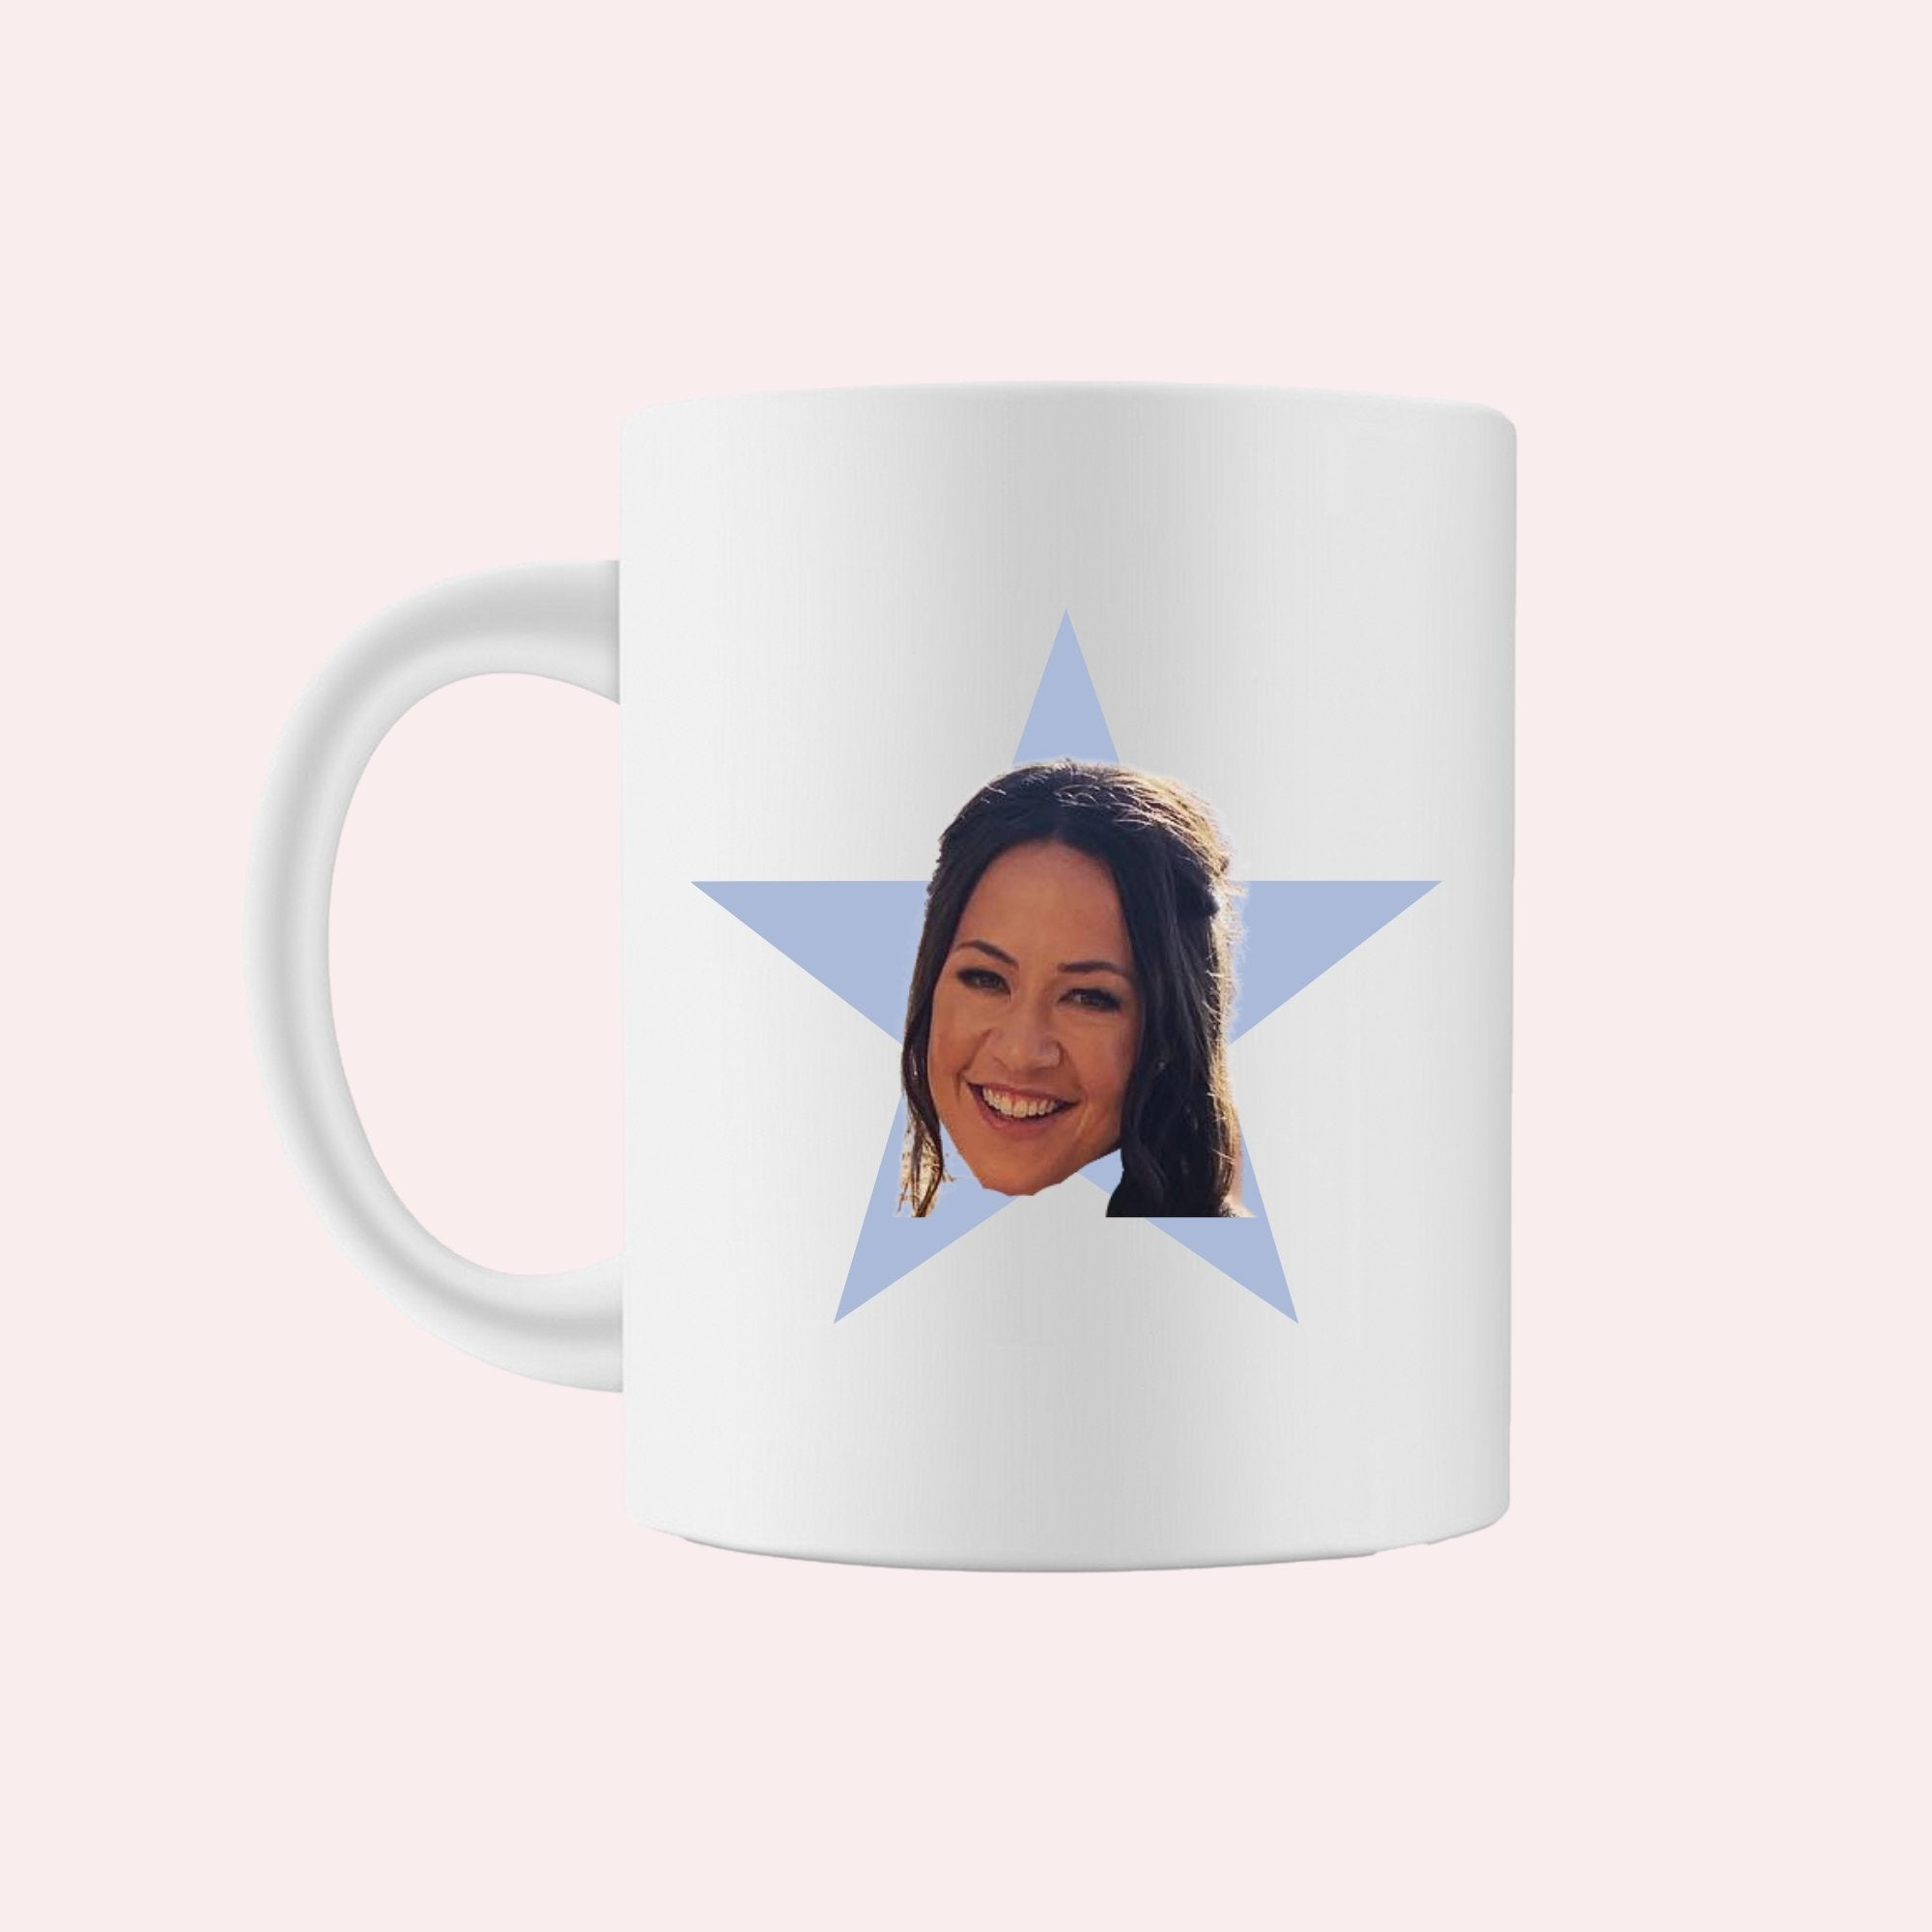 The Office Star Mug - Sprinkled With Pink #bachelorette #custom #gifts